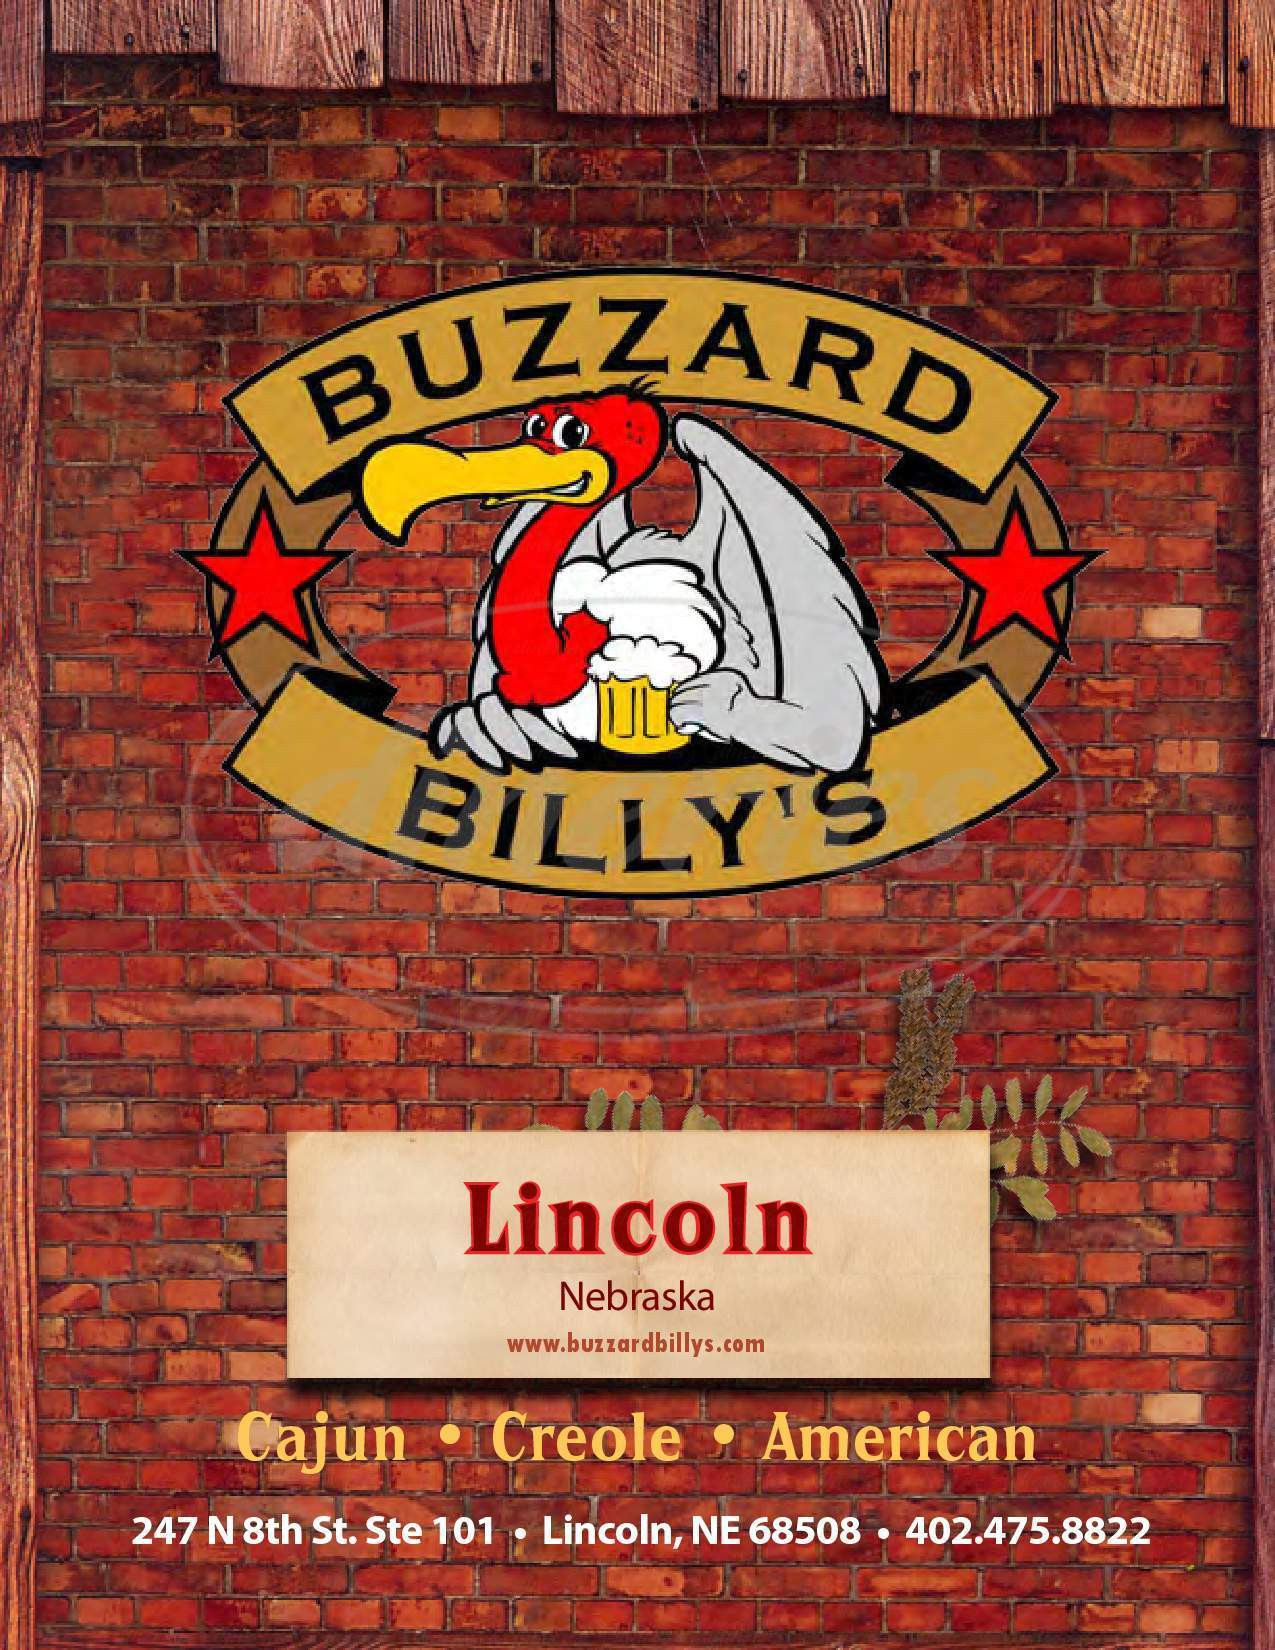 menu for Buzzard Billy's